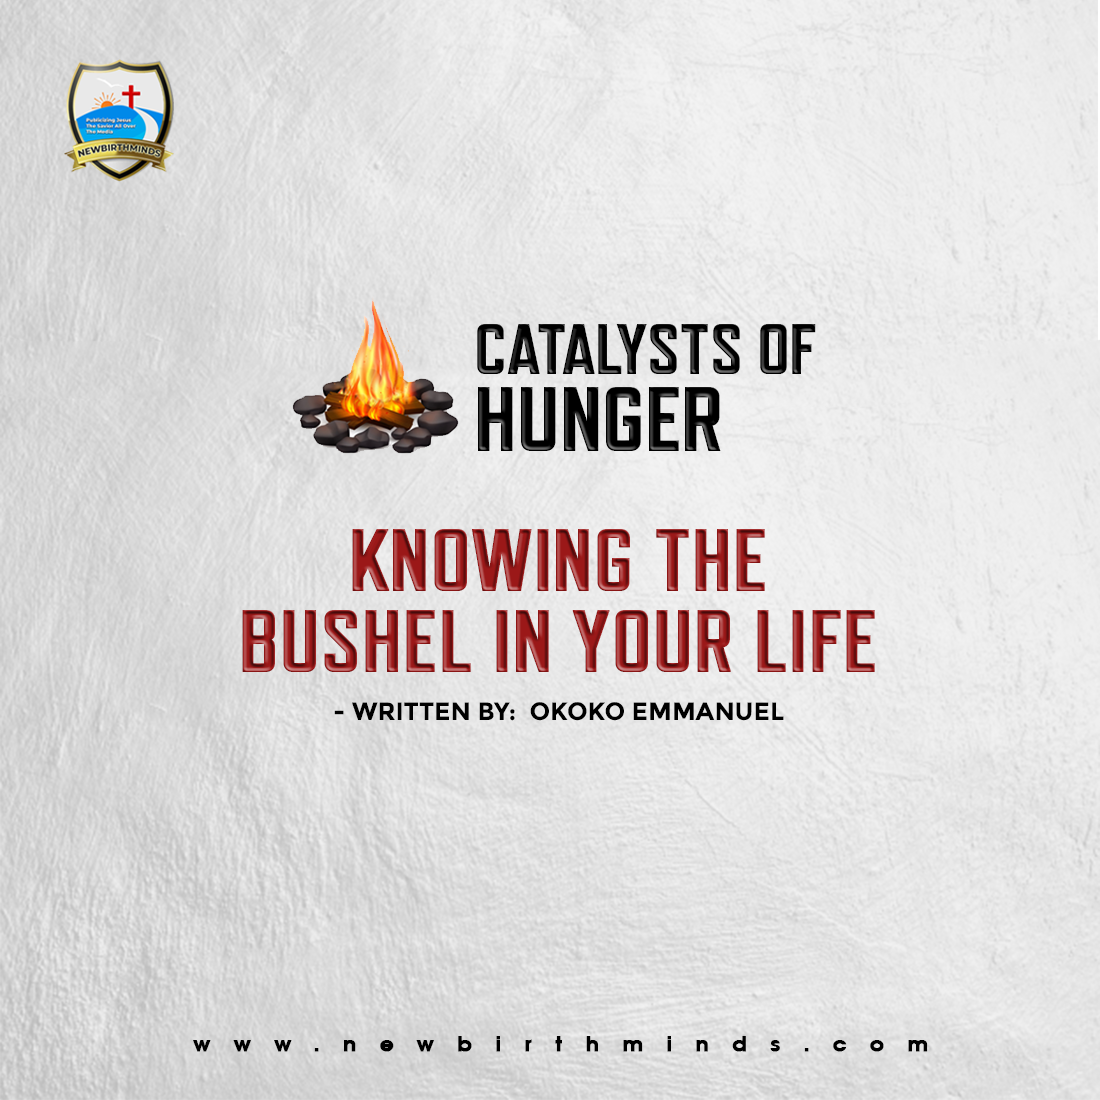 KNOWING THE BUSHEL IN YOUR LIFE